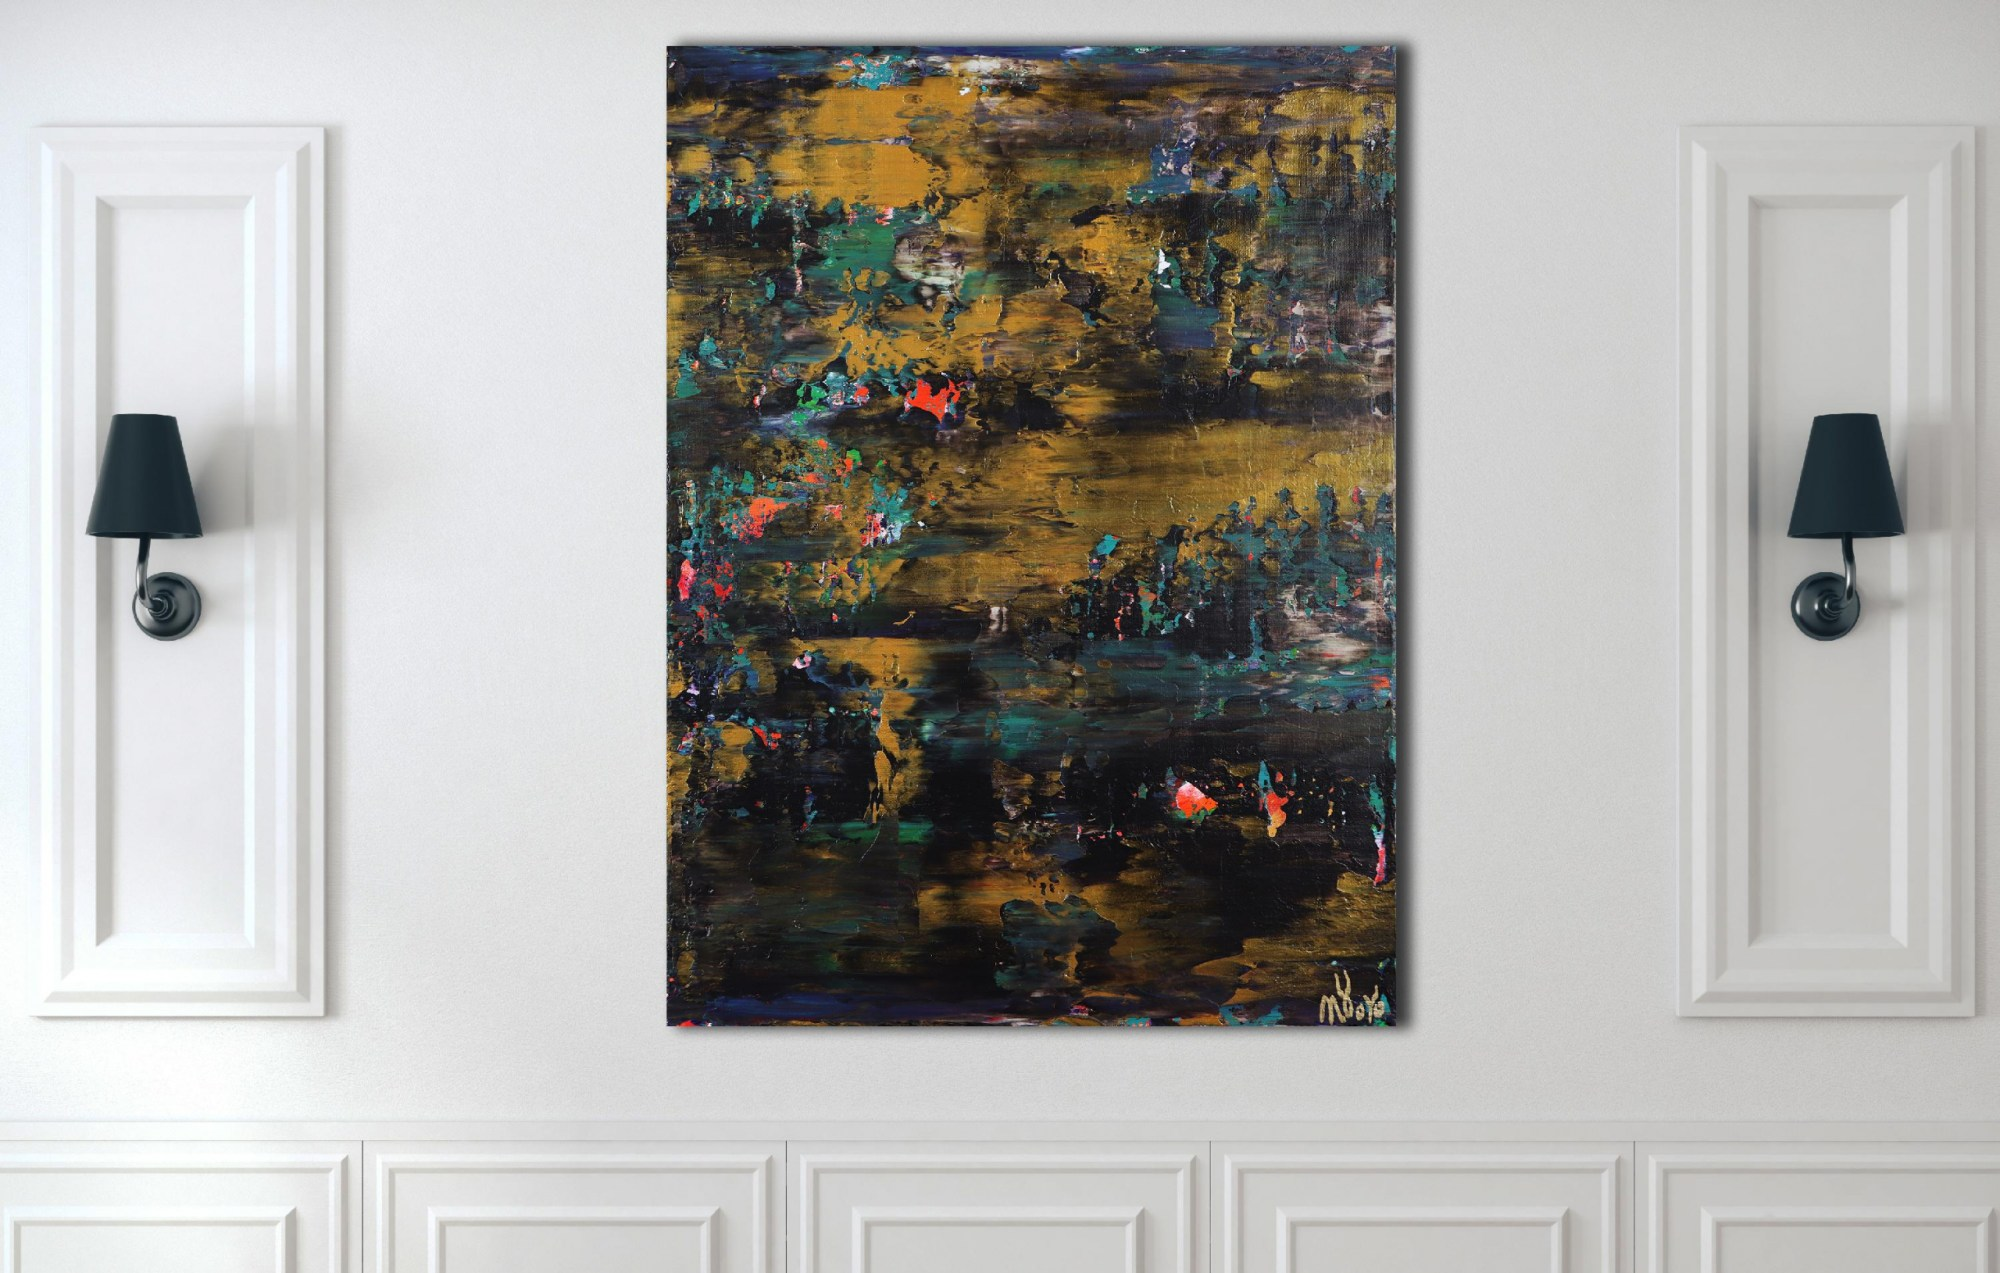 Room example / Nocturn Panorama 7 (2021) 18x24 inches / Los Angeles